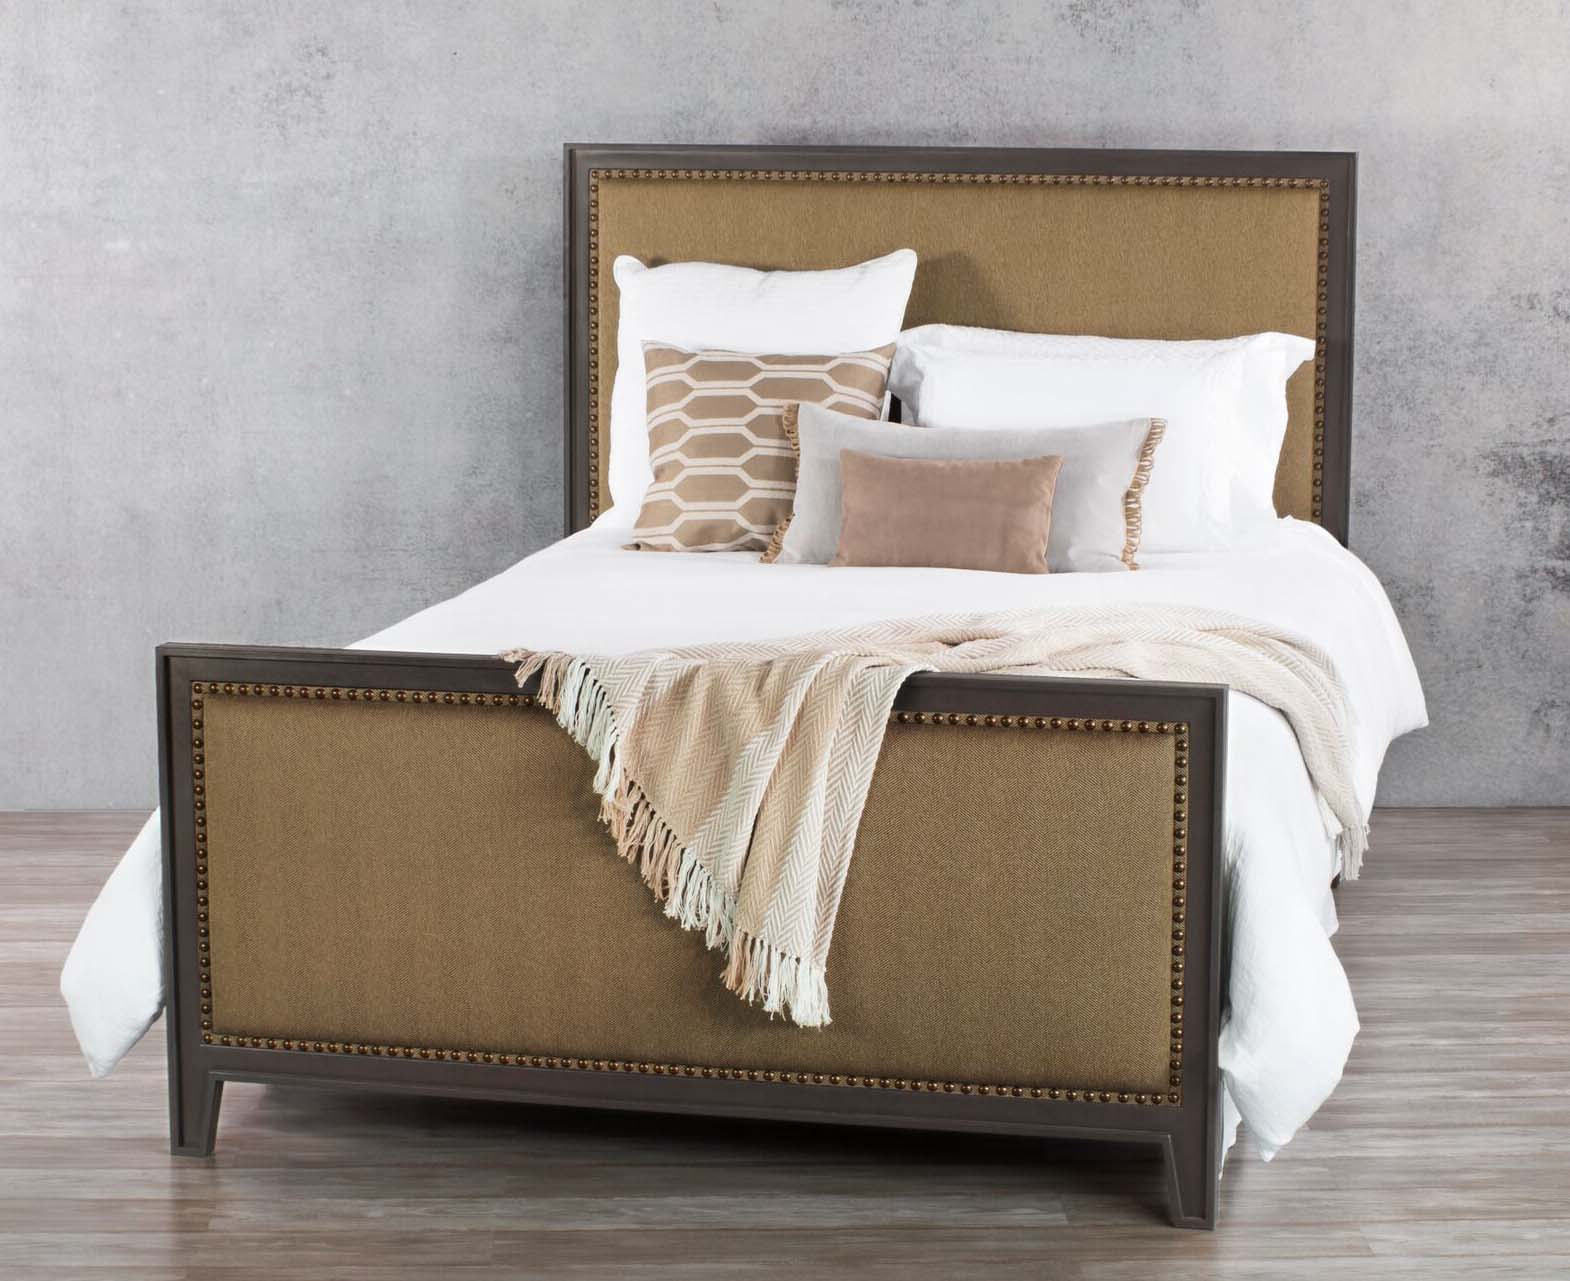 wesley allen avery iron bed king iron beds